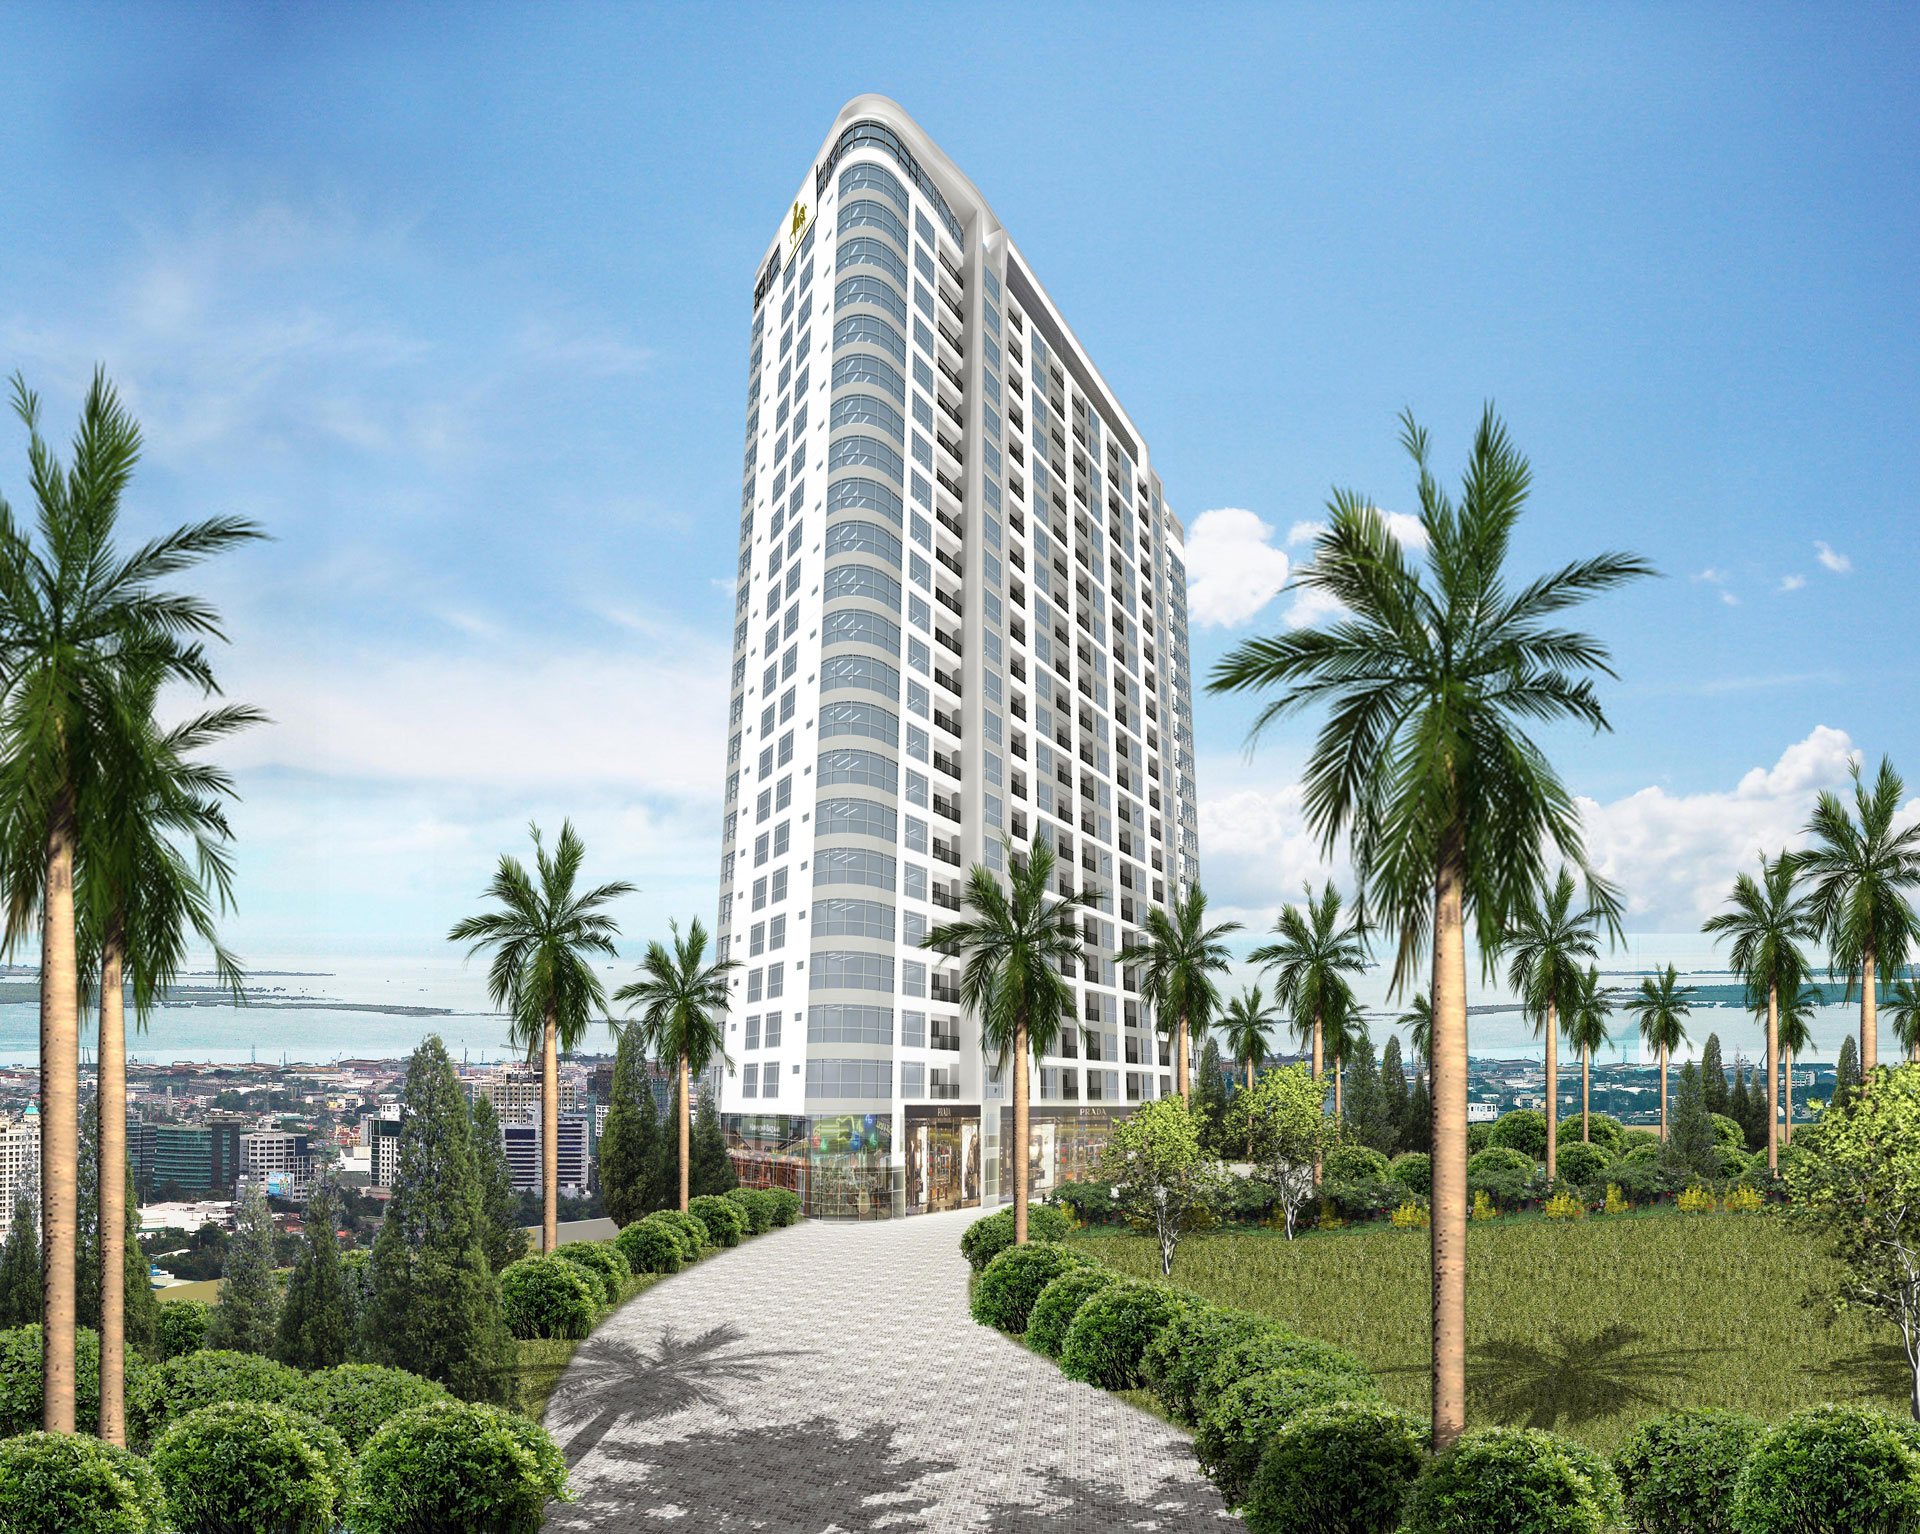 Marco polo residential tower